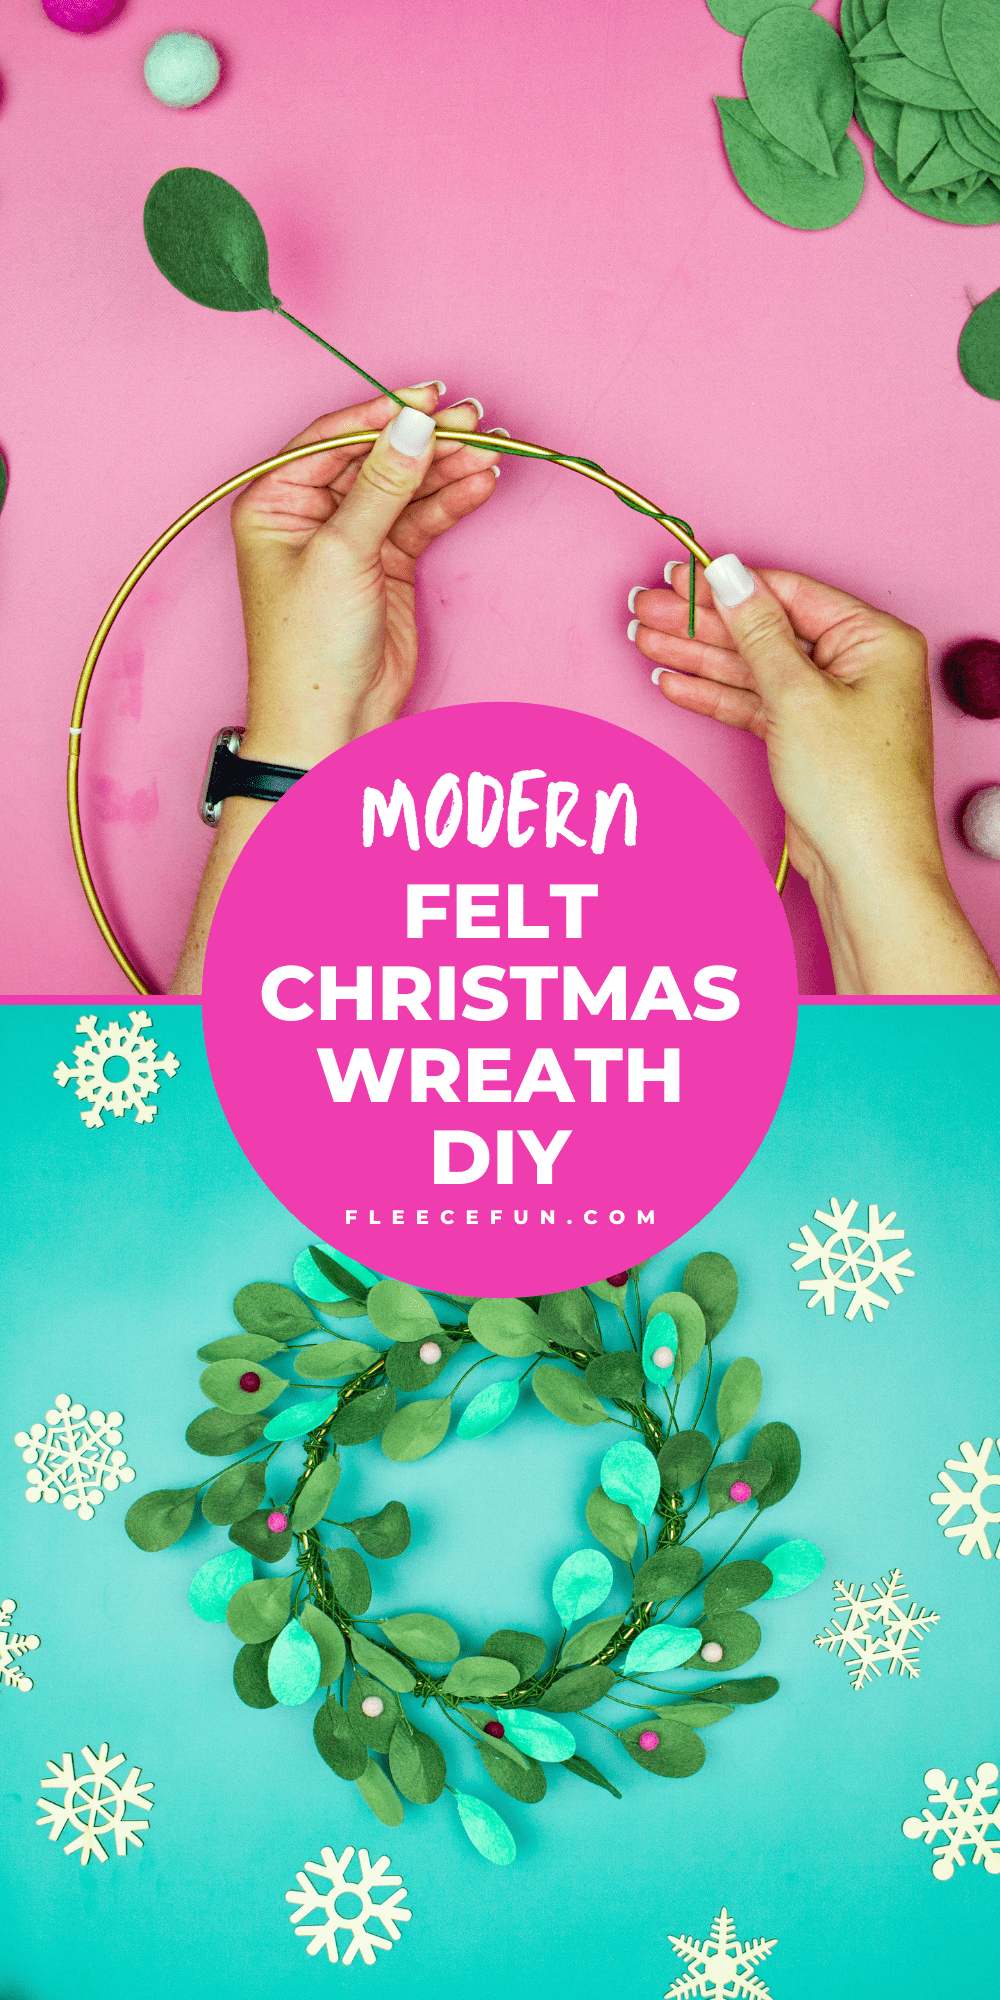 This modern Christmas Wreath DIY (made from felt) is a whimsical addition to your holiday décor. With a few items you can make this festive wreath. Because of the way it's constructed no two are alike. Make it as full or as thin as your taste's desire. Because it's made from felt, this wreath can be made in an array of colors to suit your style.